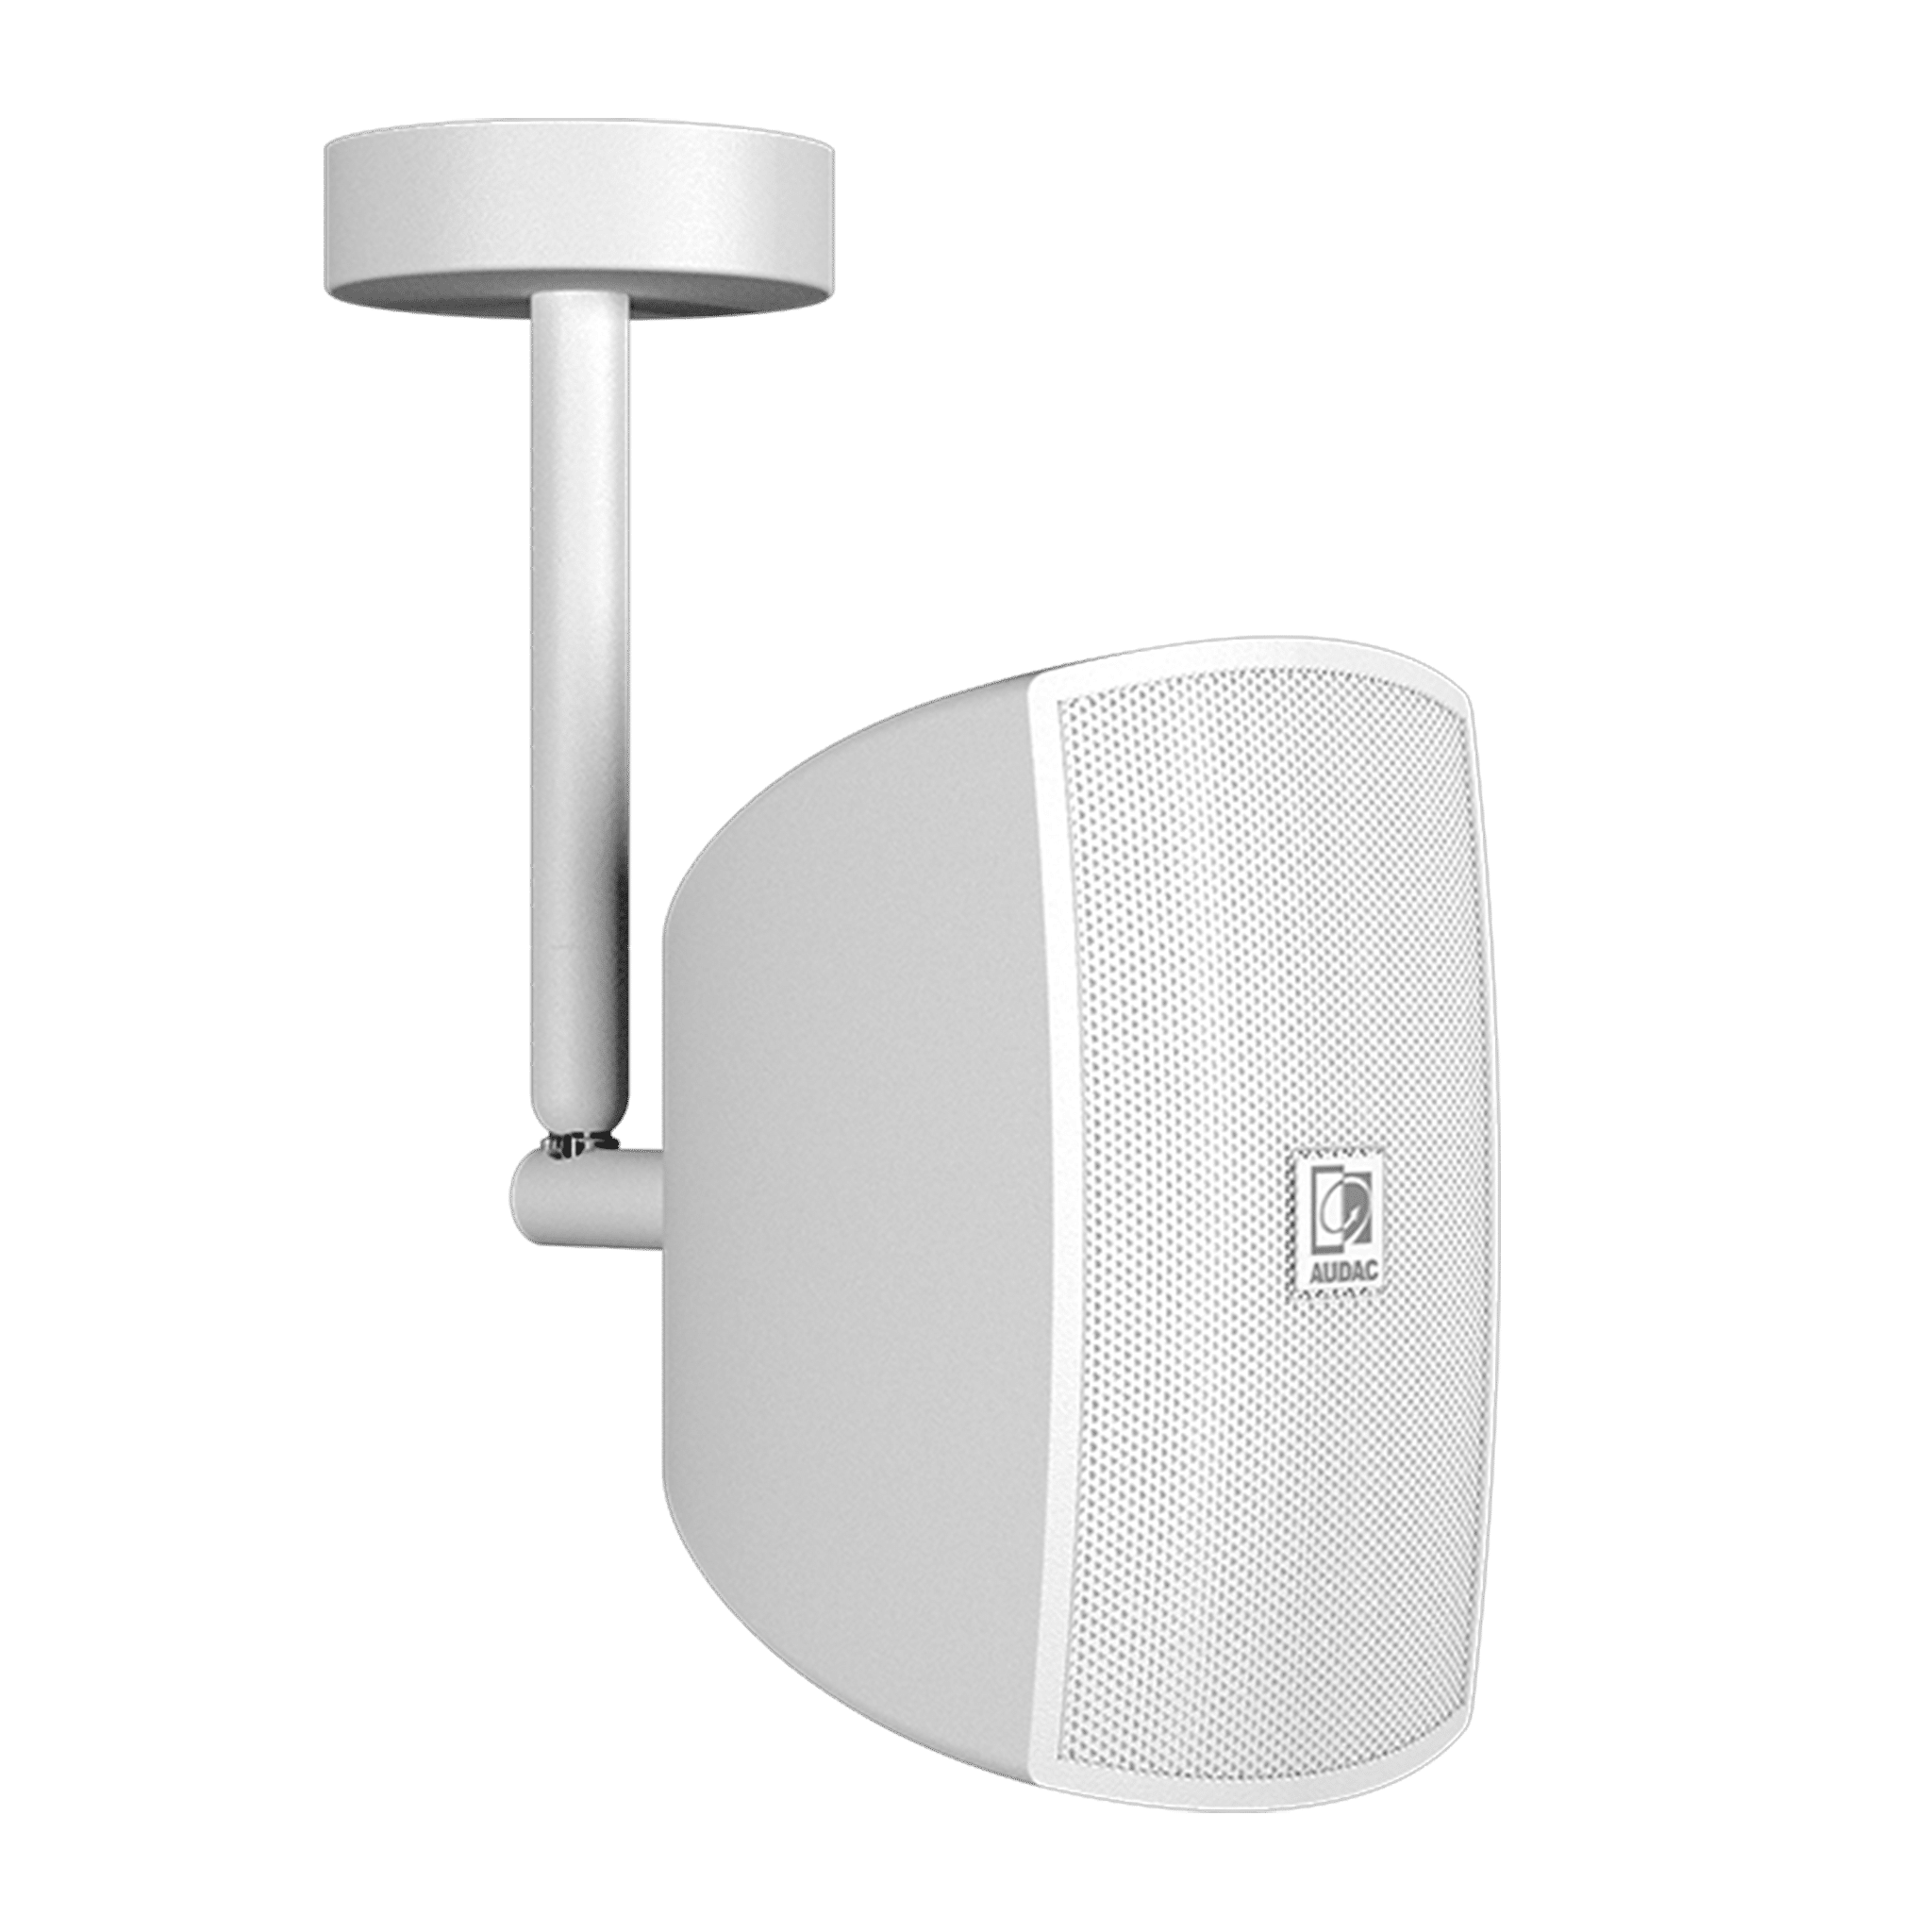 ATEO2S - ATEO2 with surface ceiling mount